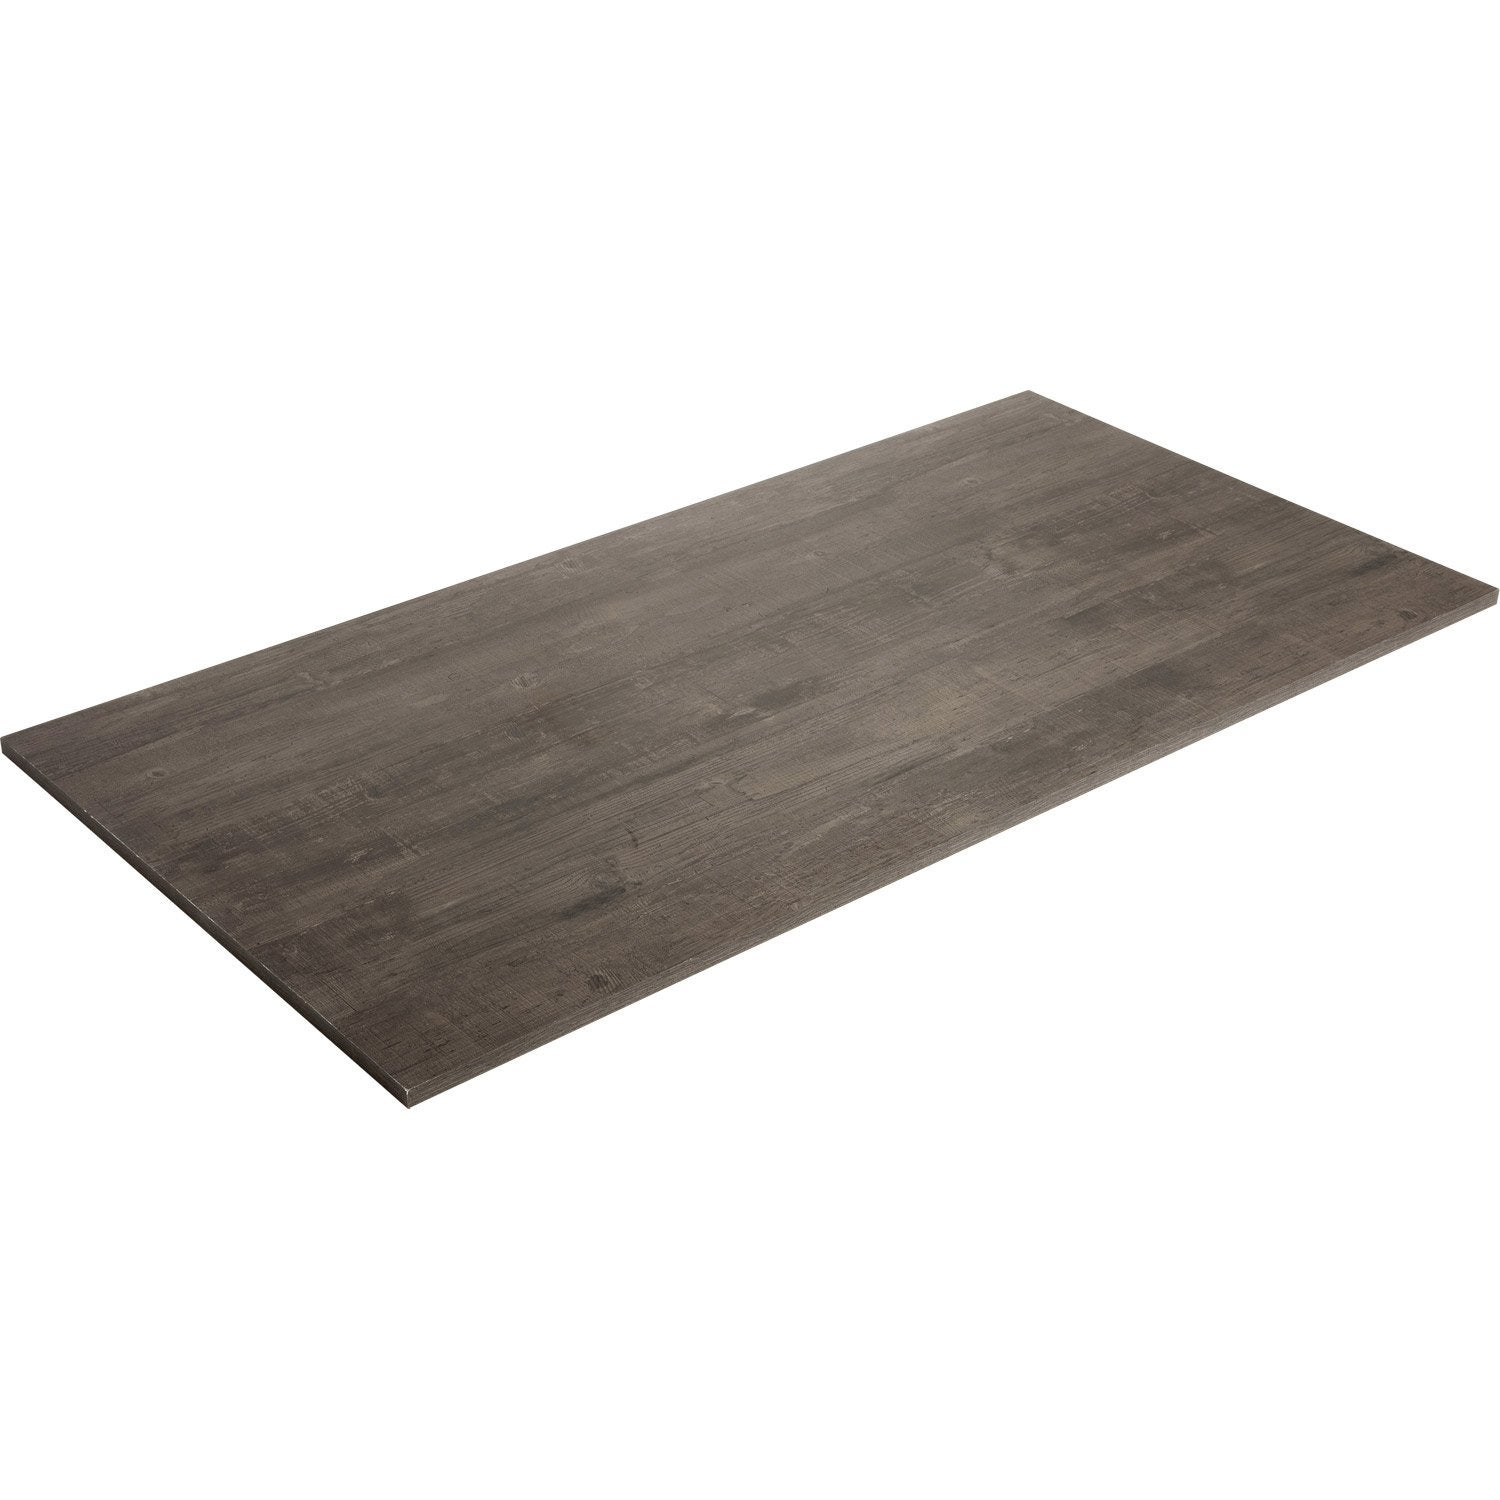 Plateau de table agglom r planche us e noire spaceo l for Pulidoras de suelos leroy merlin